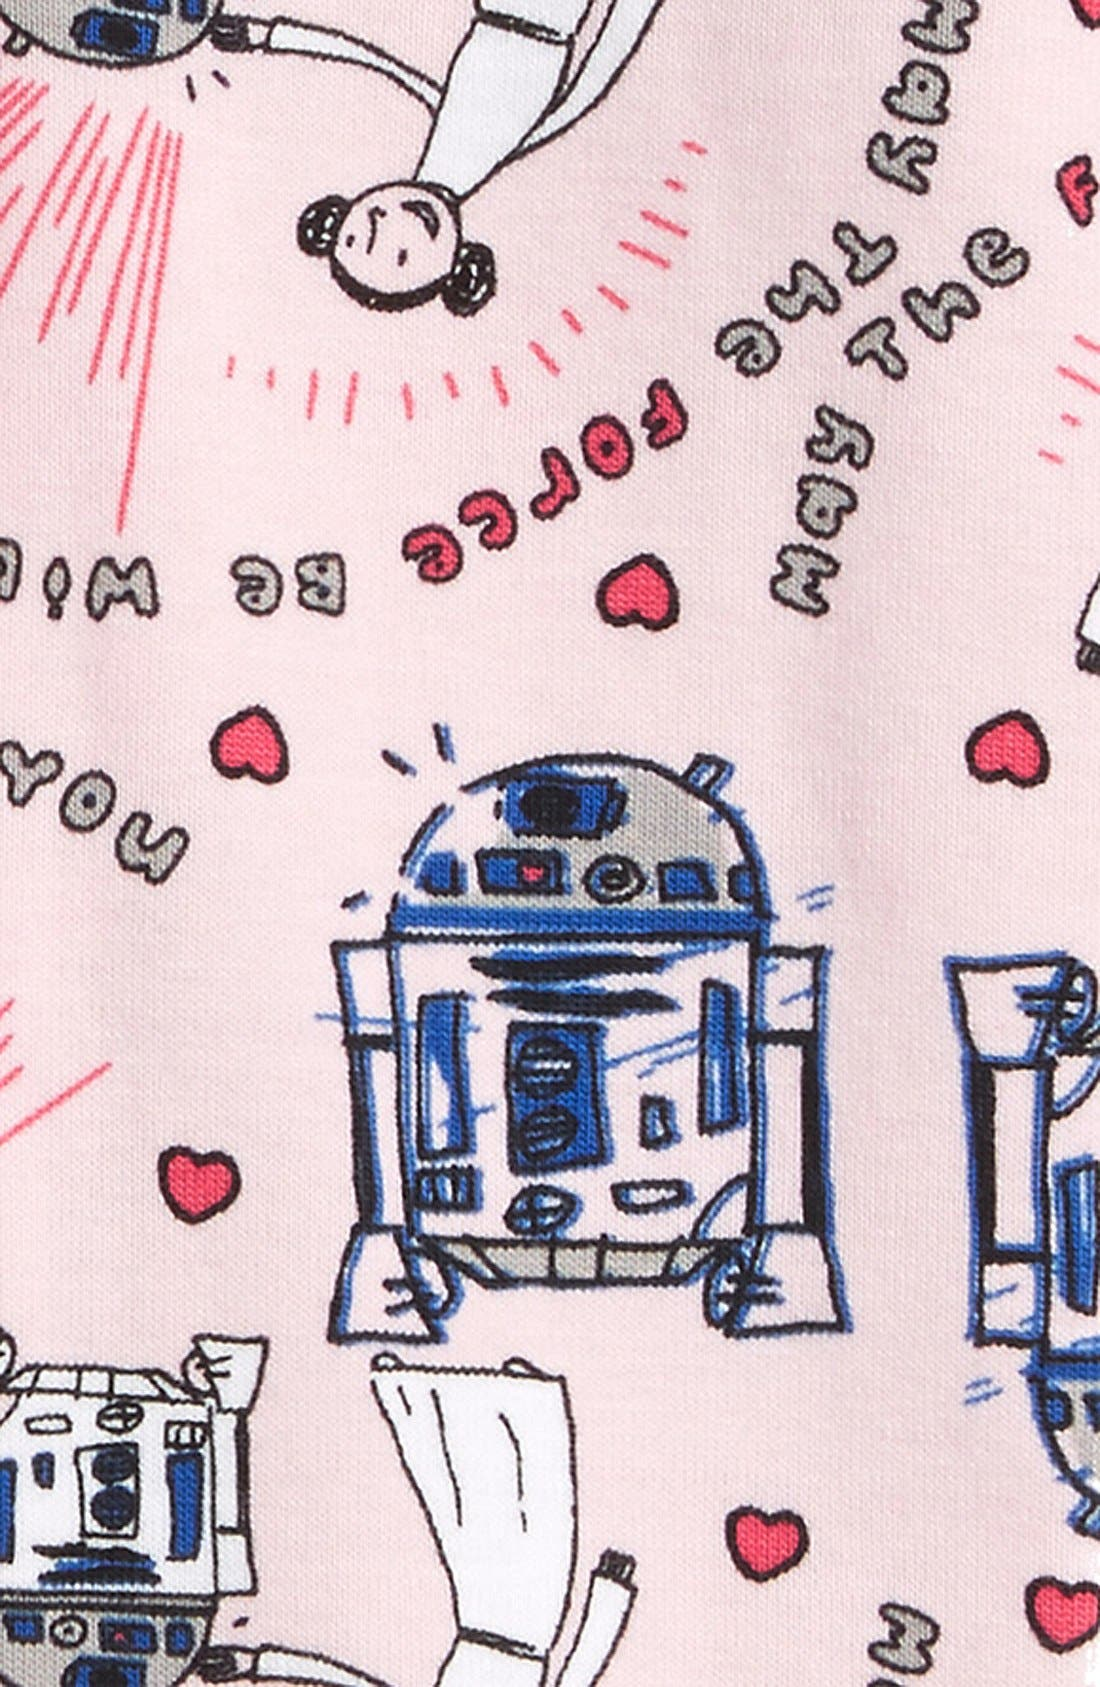 'Star Wars - Valentine's Day' Organic Cotton Pajamas,                             Alternate thumbnail 2, color,                             650